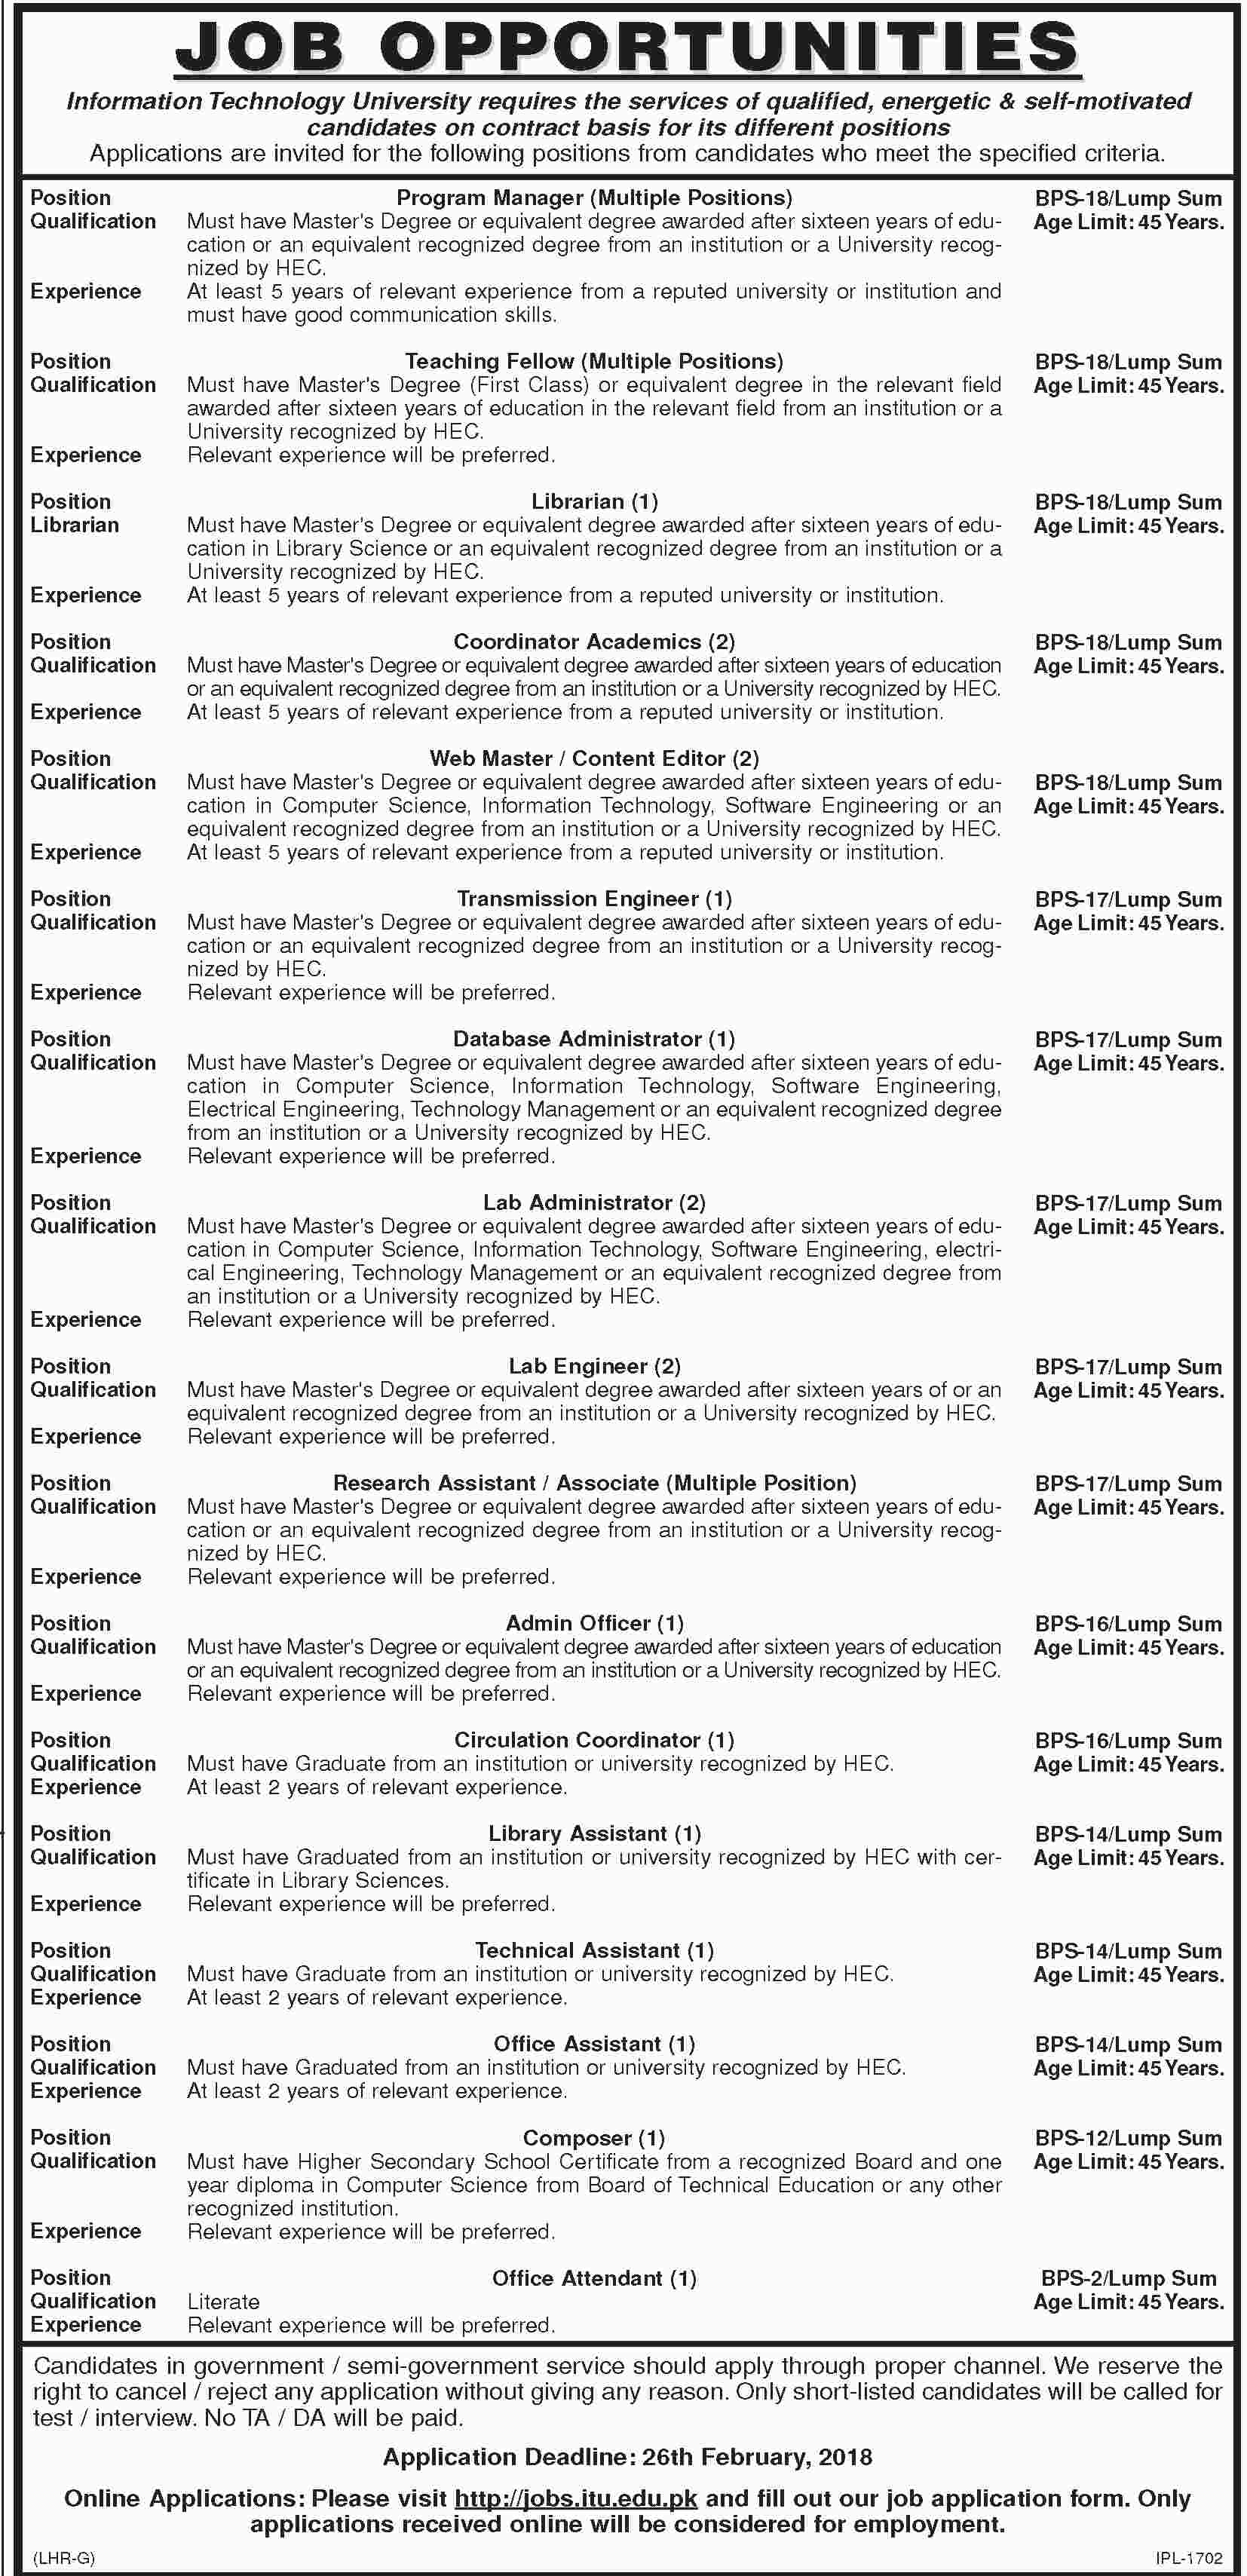 Jobs In Information Technology University 09 Feb 2018